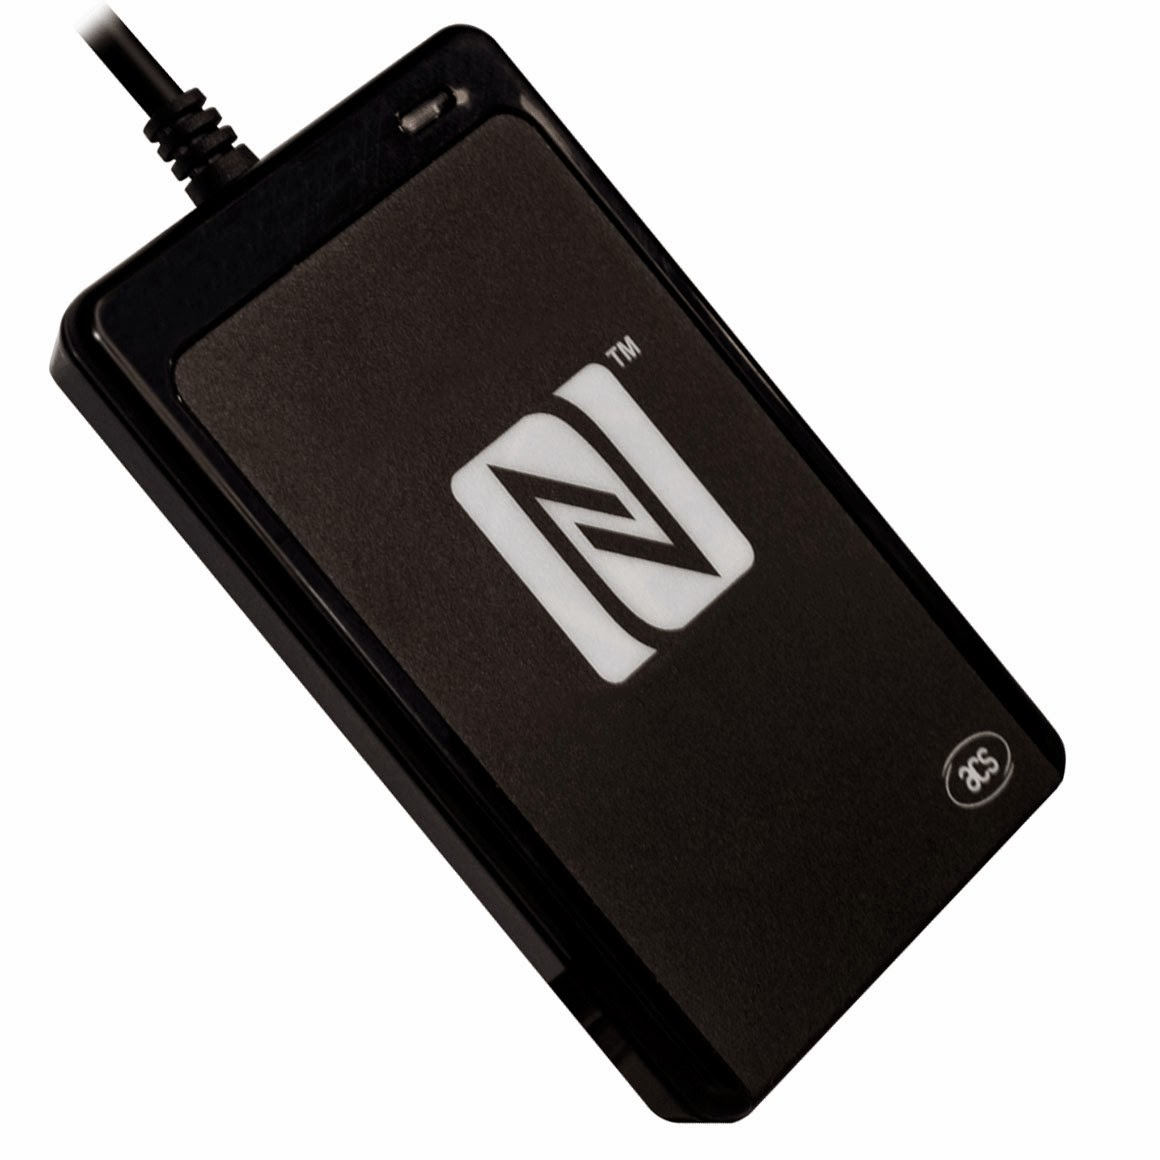 Contactless Near Field Communication (NFC) PC/SC Forum-Certified Reader ACR1252U USB 2.0